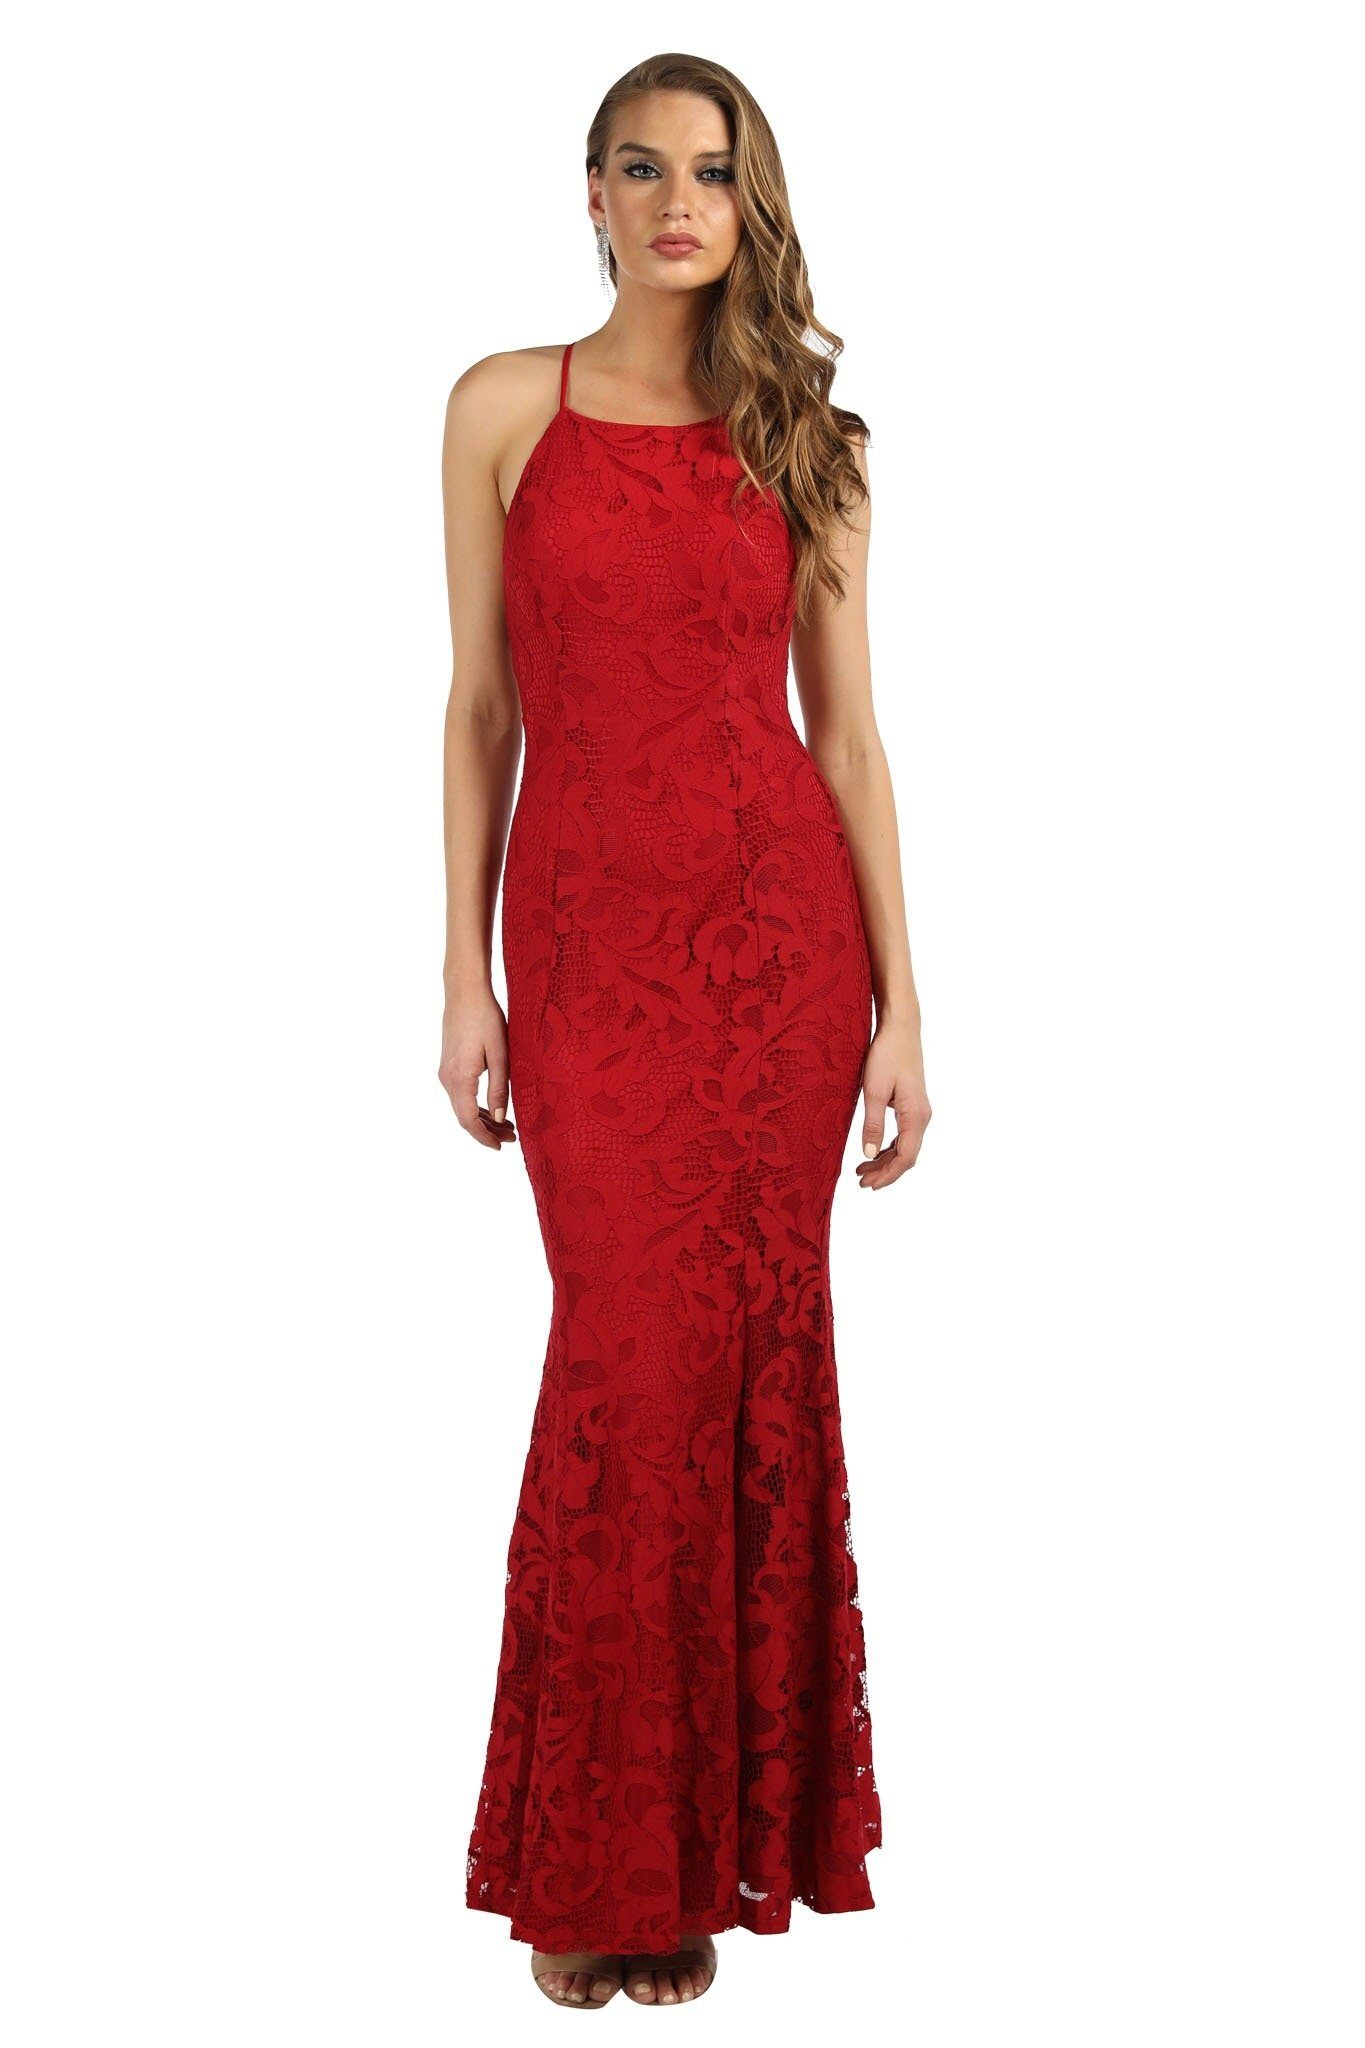 Maroon deep red lace fitted maxi dress with high neckline design, self-tie lace up back strings on exposed back and gently flared skirt